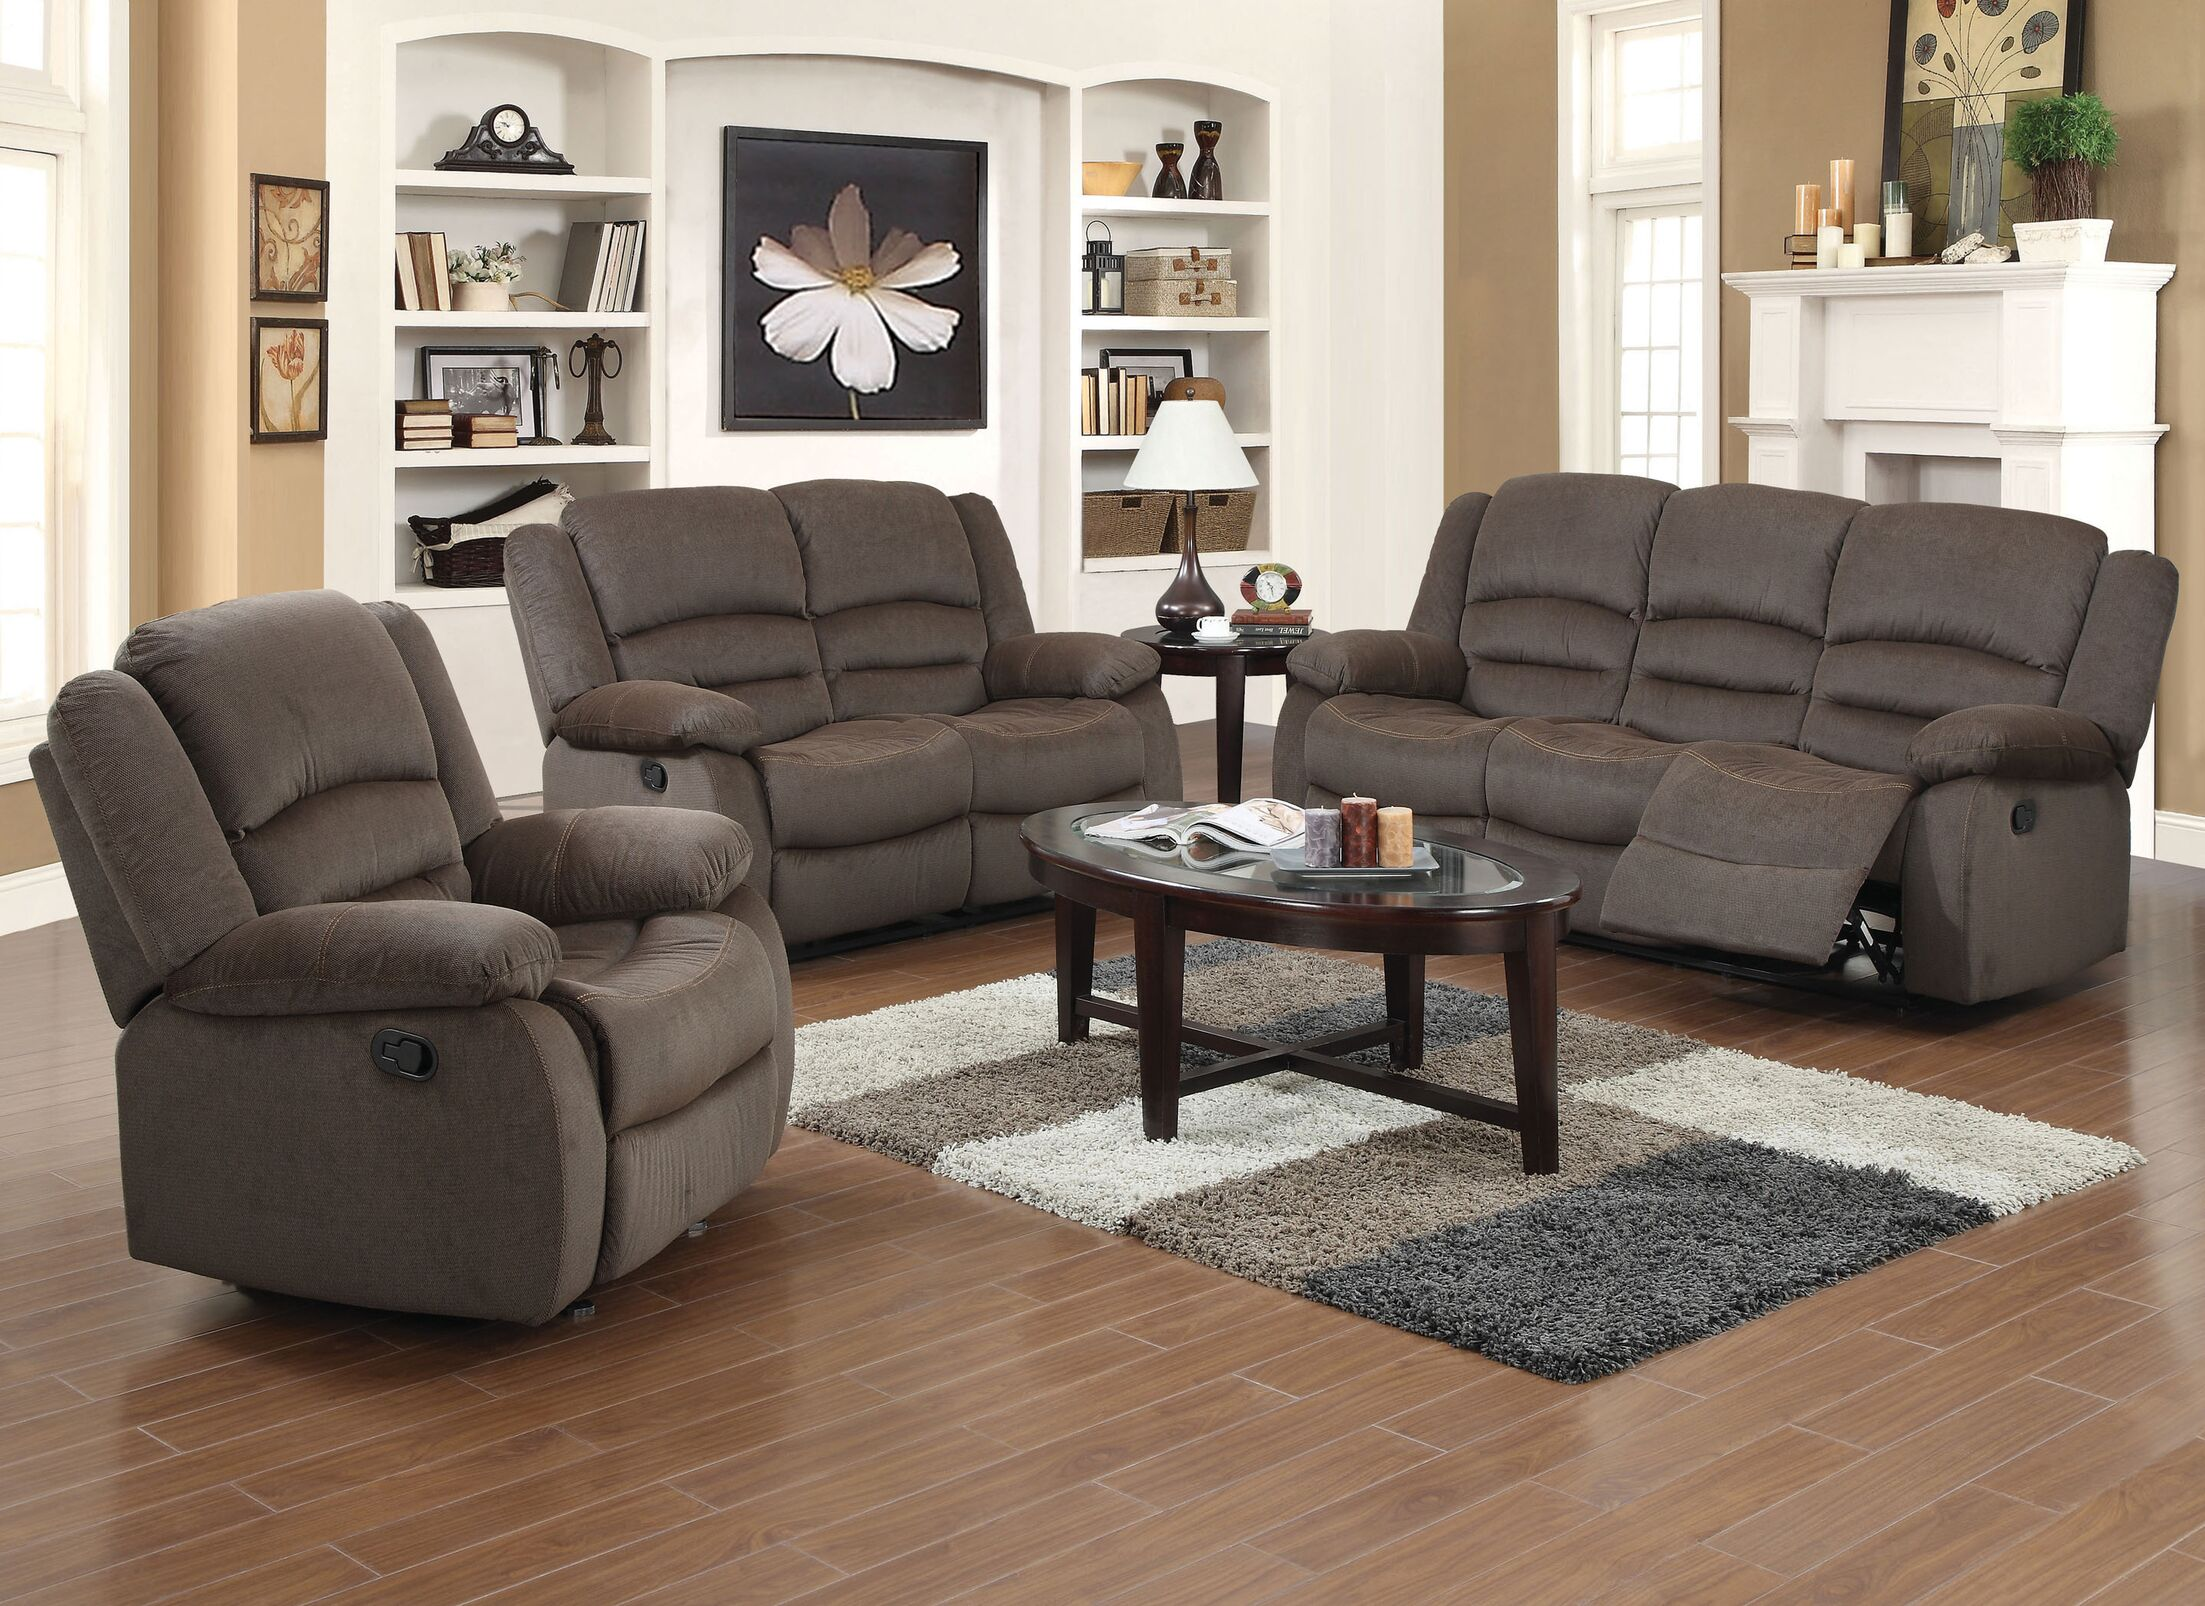 Maxine Reclining 3 Piece Living Room Set Upholstery: Brown